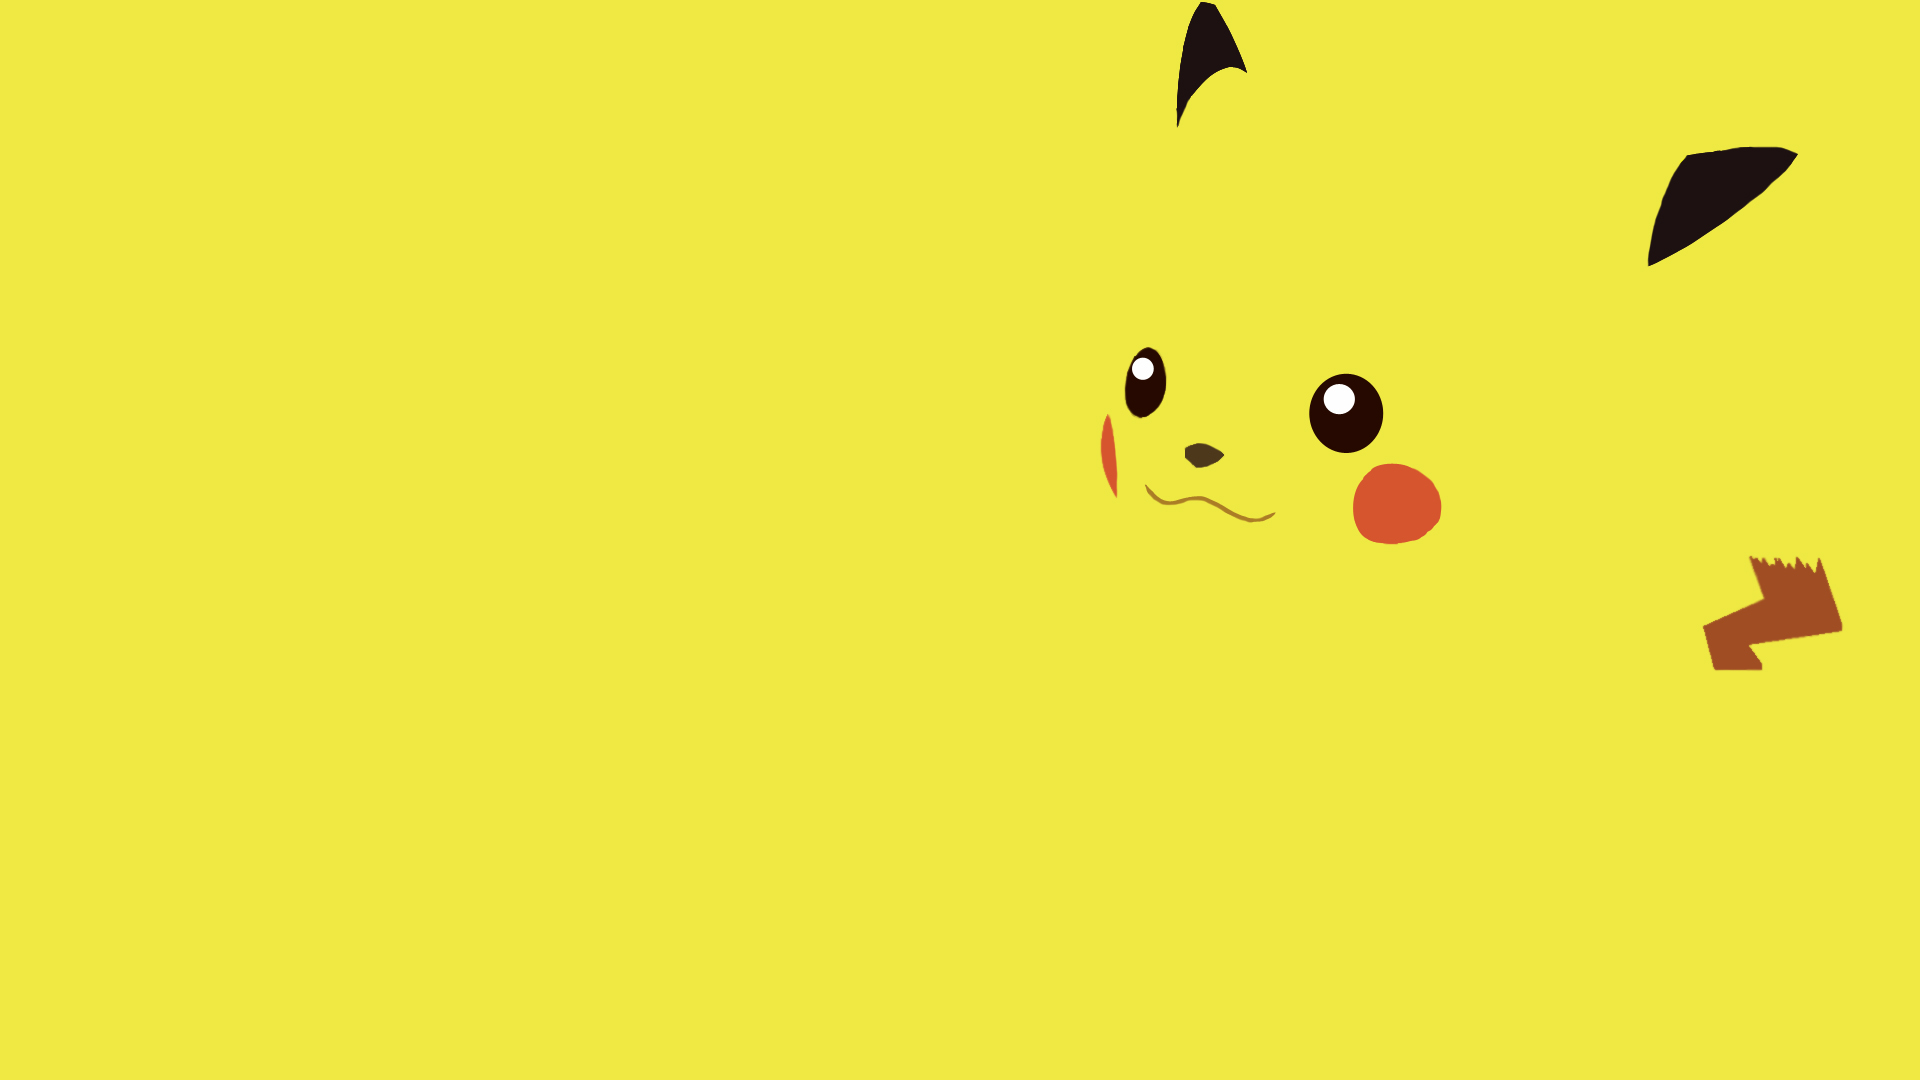 Download Pokemon Pikachu Wallpaper 1920x1080 Wallpoper 1920x1080